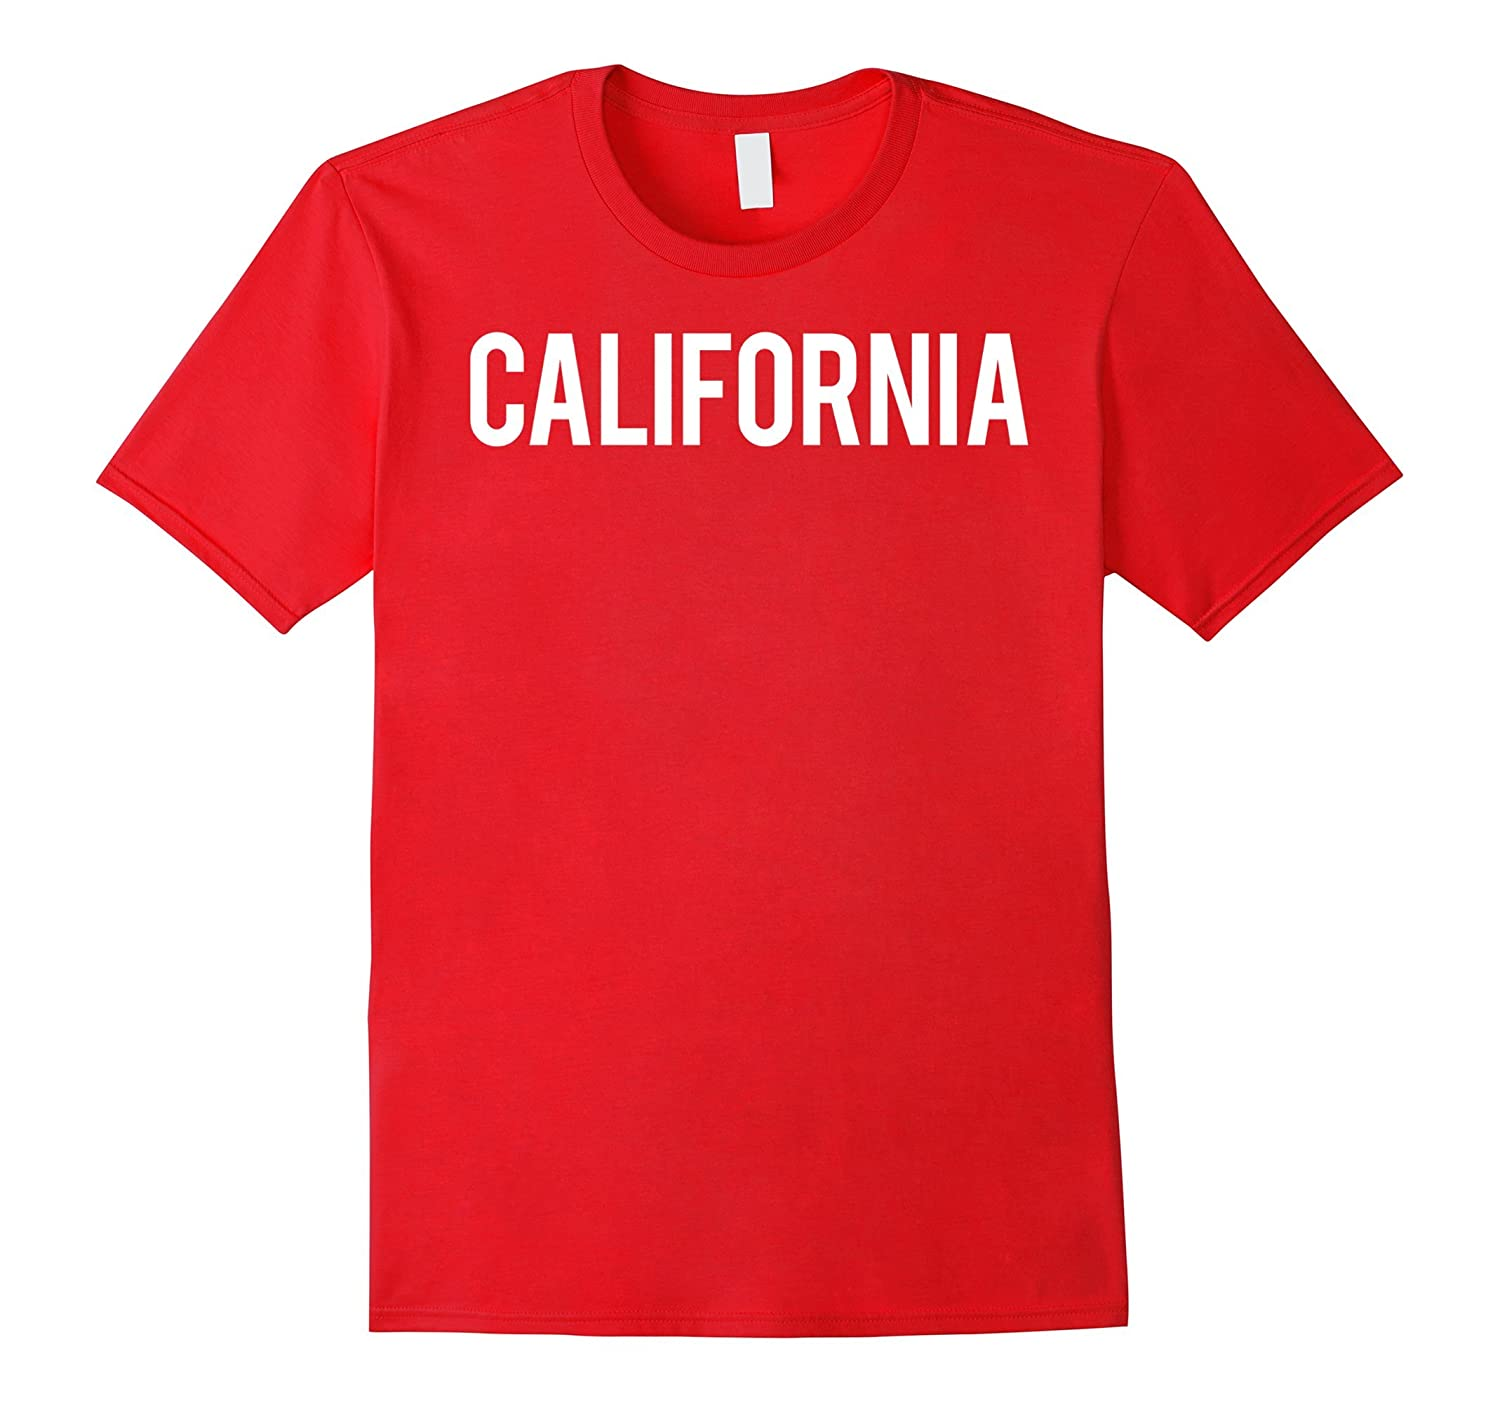 California T Shirt - Cool CA state fan funny cheap gift tee-CD